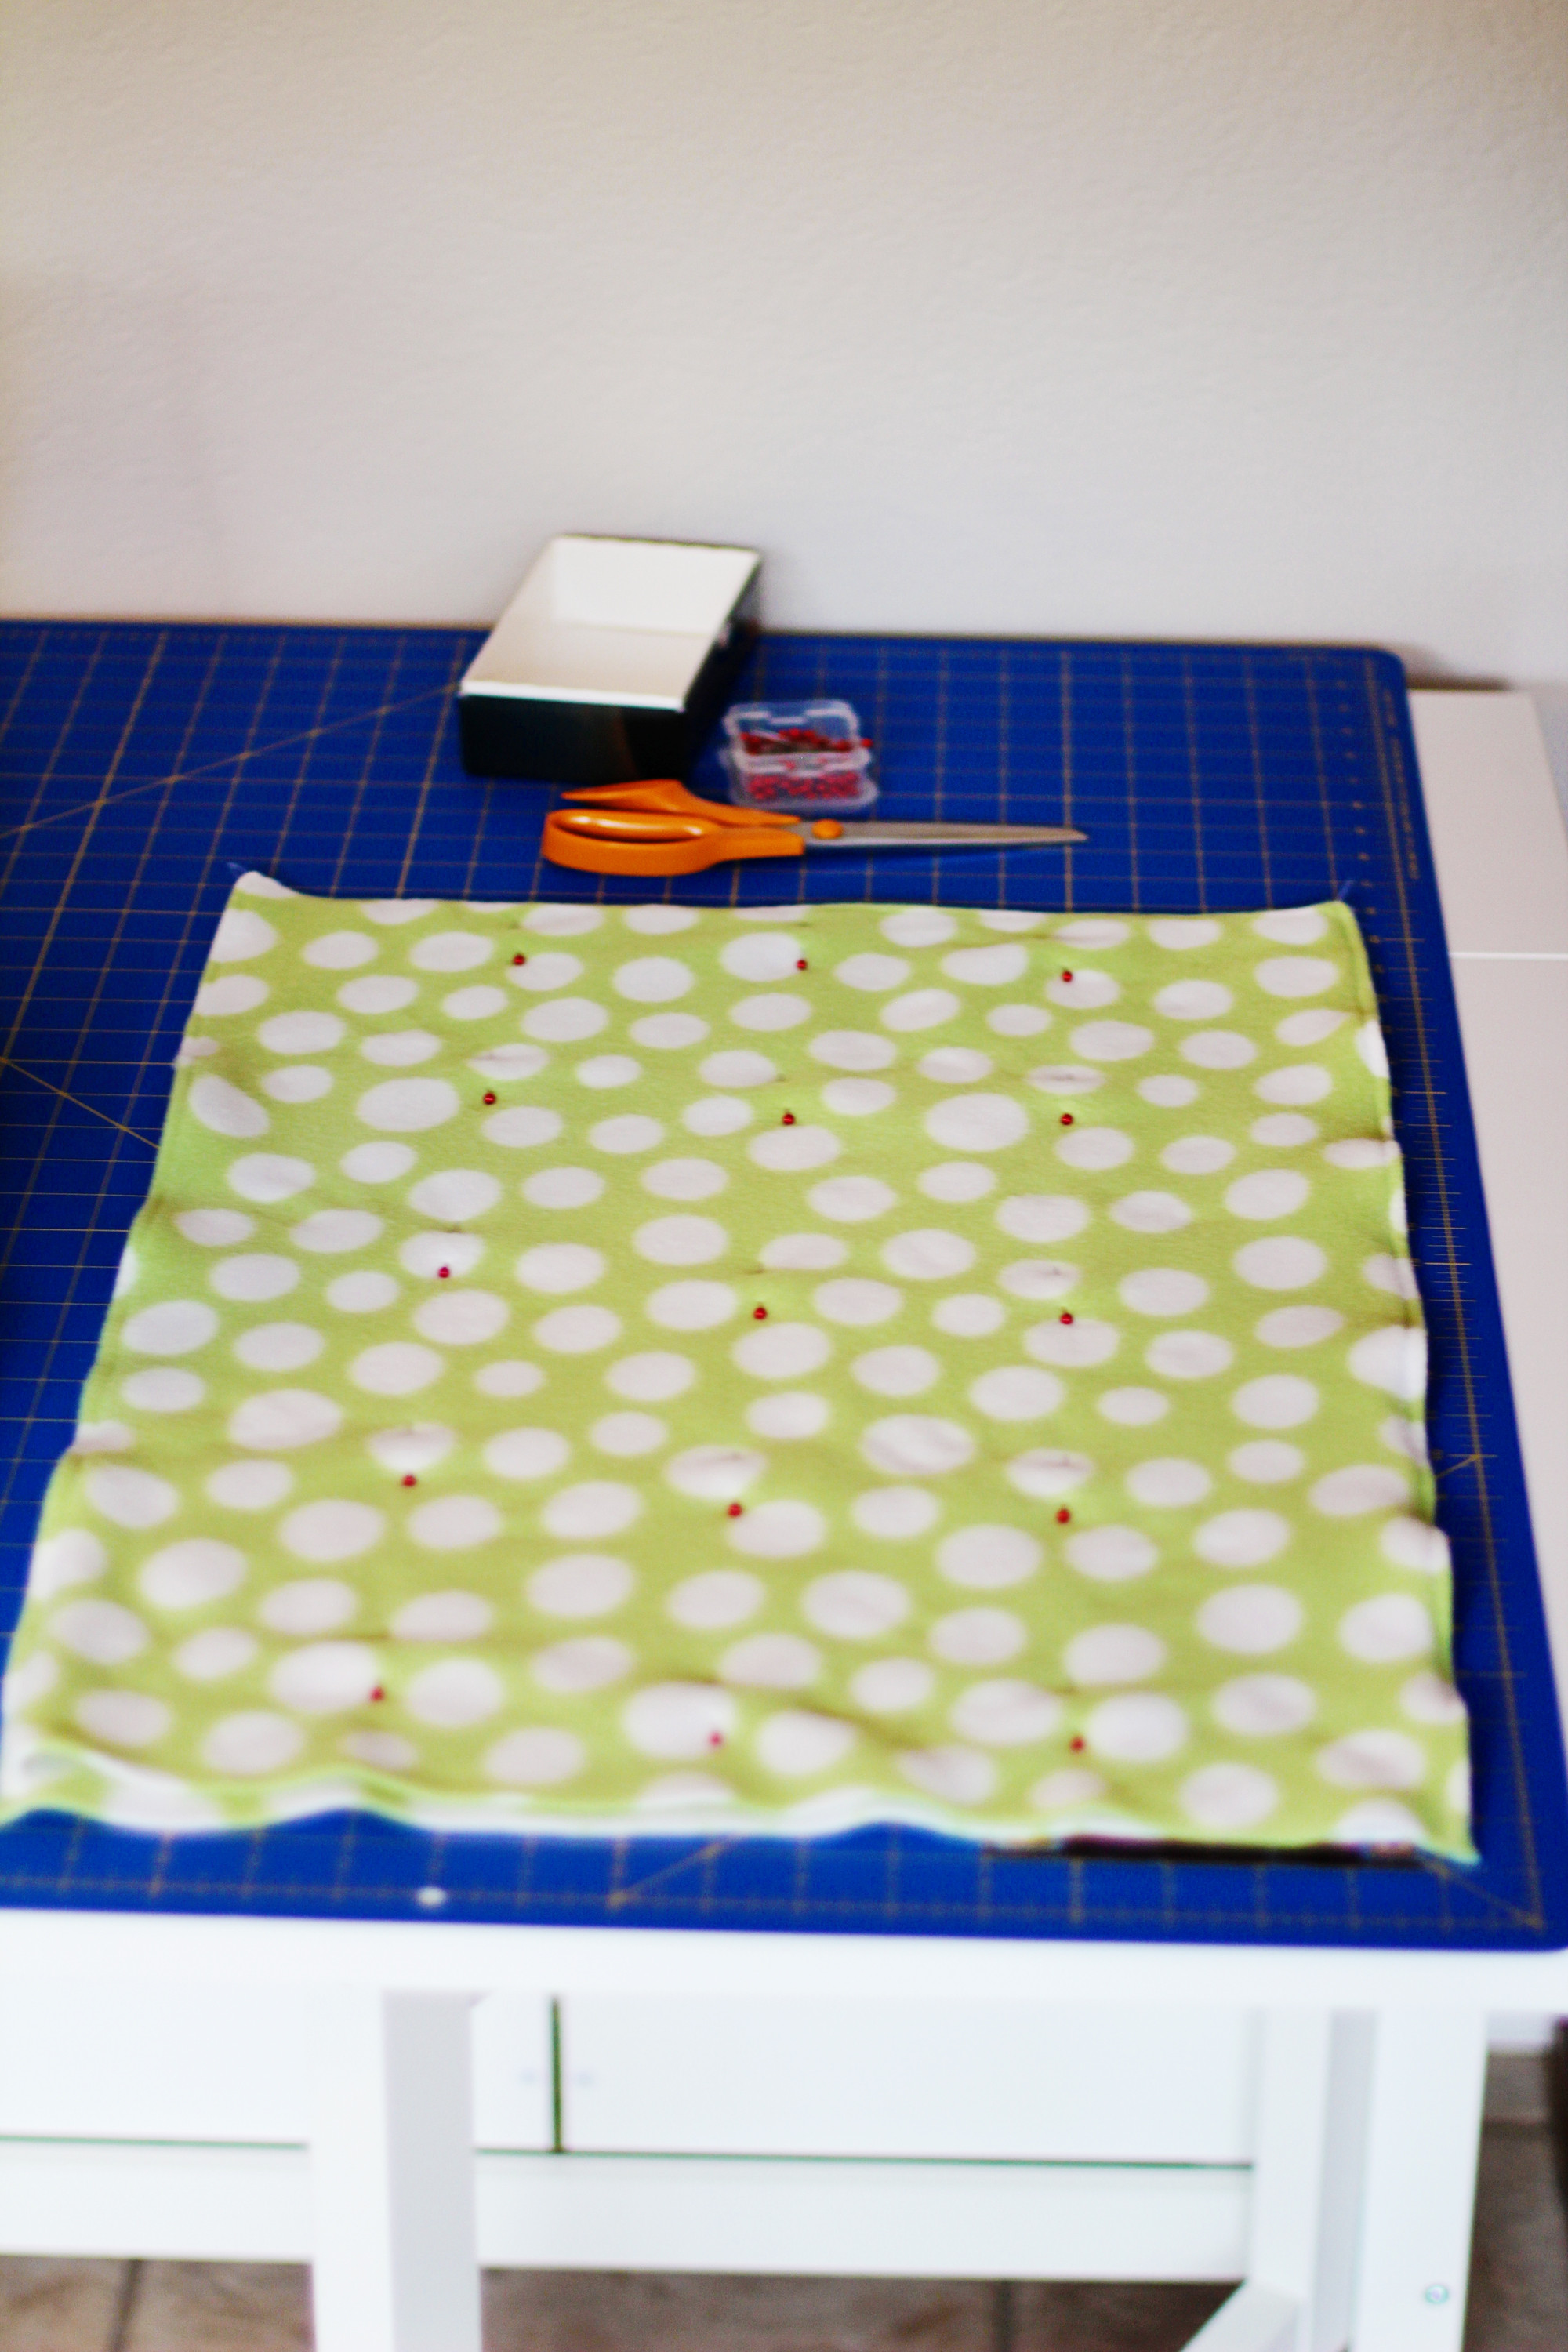 Best ideas about DIY Weighted Blanket . Save or Pin WB4 Now.